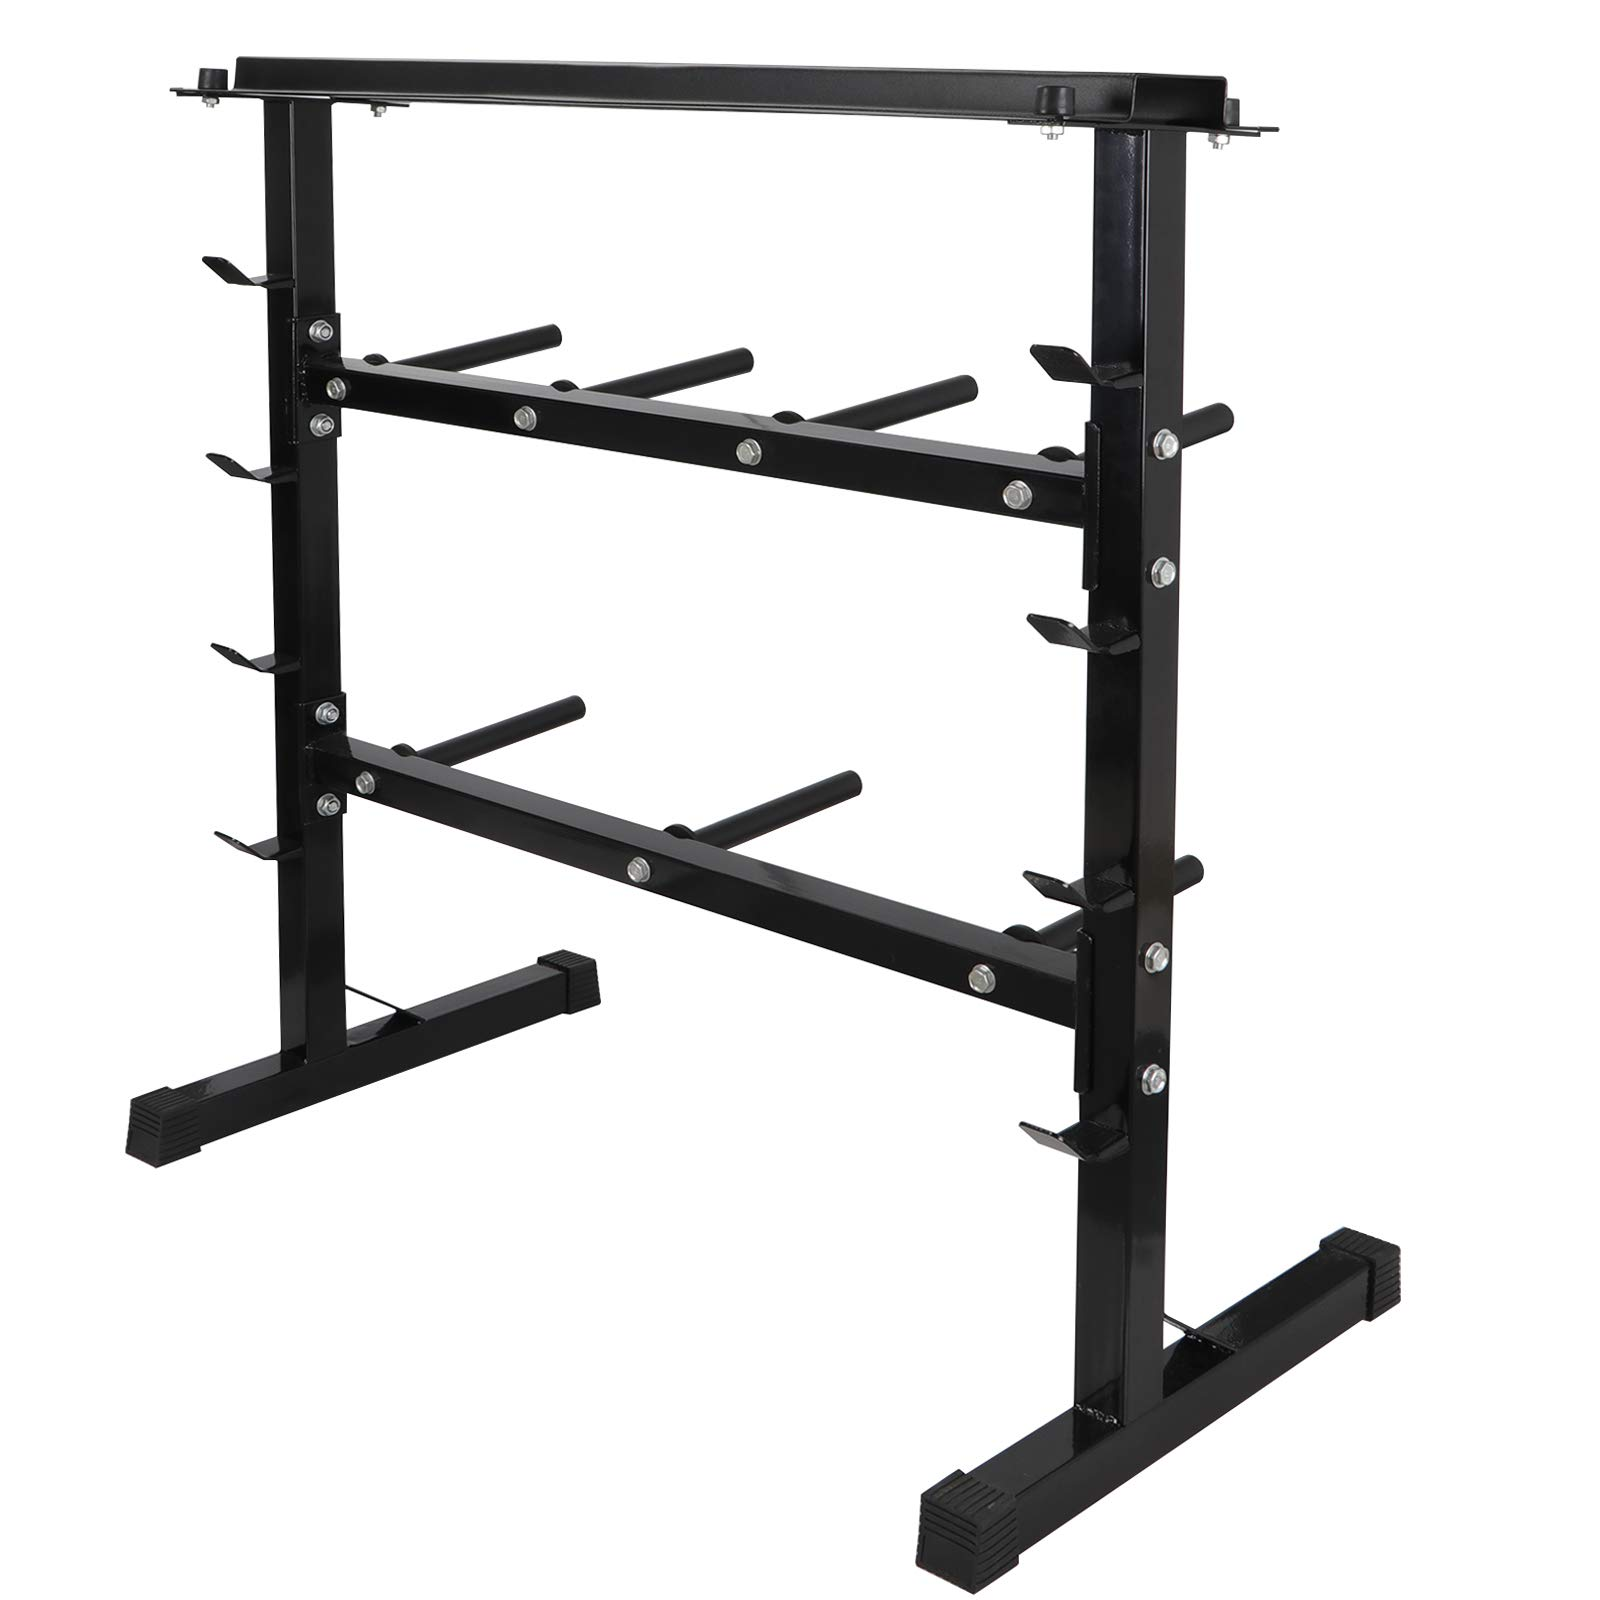 F2C 2 Tier 40'' Barbell Dumbbell Weight Plate Rack Weights Storage Organizer Stand Bench Base for Home Gym